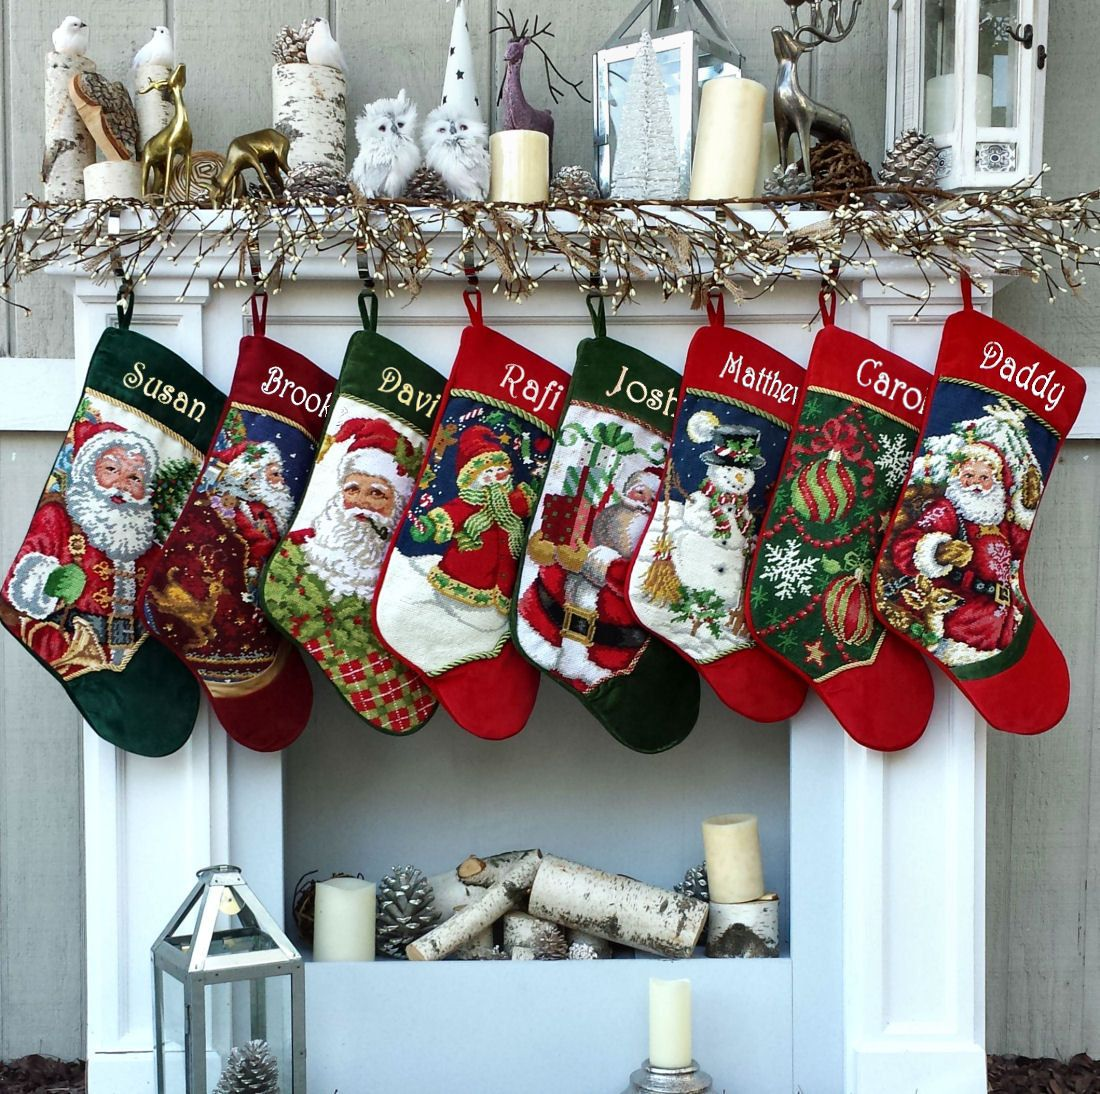 personalized needlepoint christmas stockings santa snowman ornaments it is 18 in size and of course fully lined heirloom quality - Personalized Needlepoint Christmas Stockings